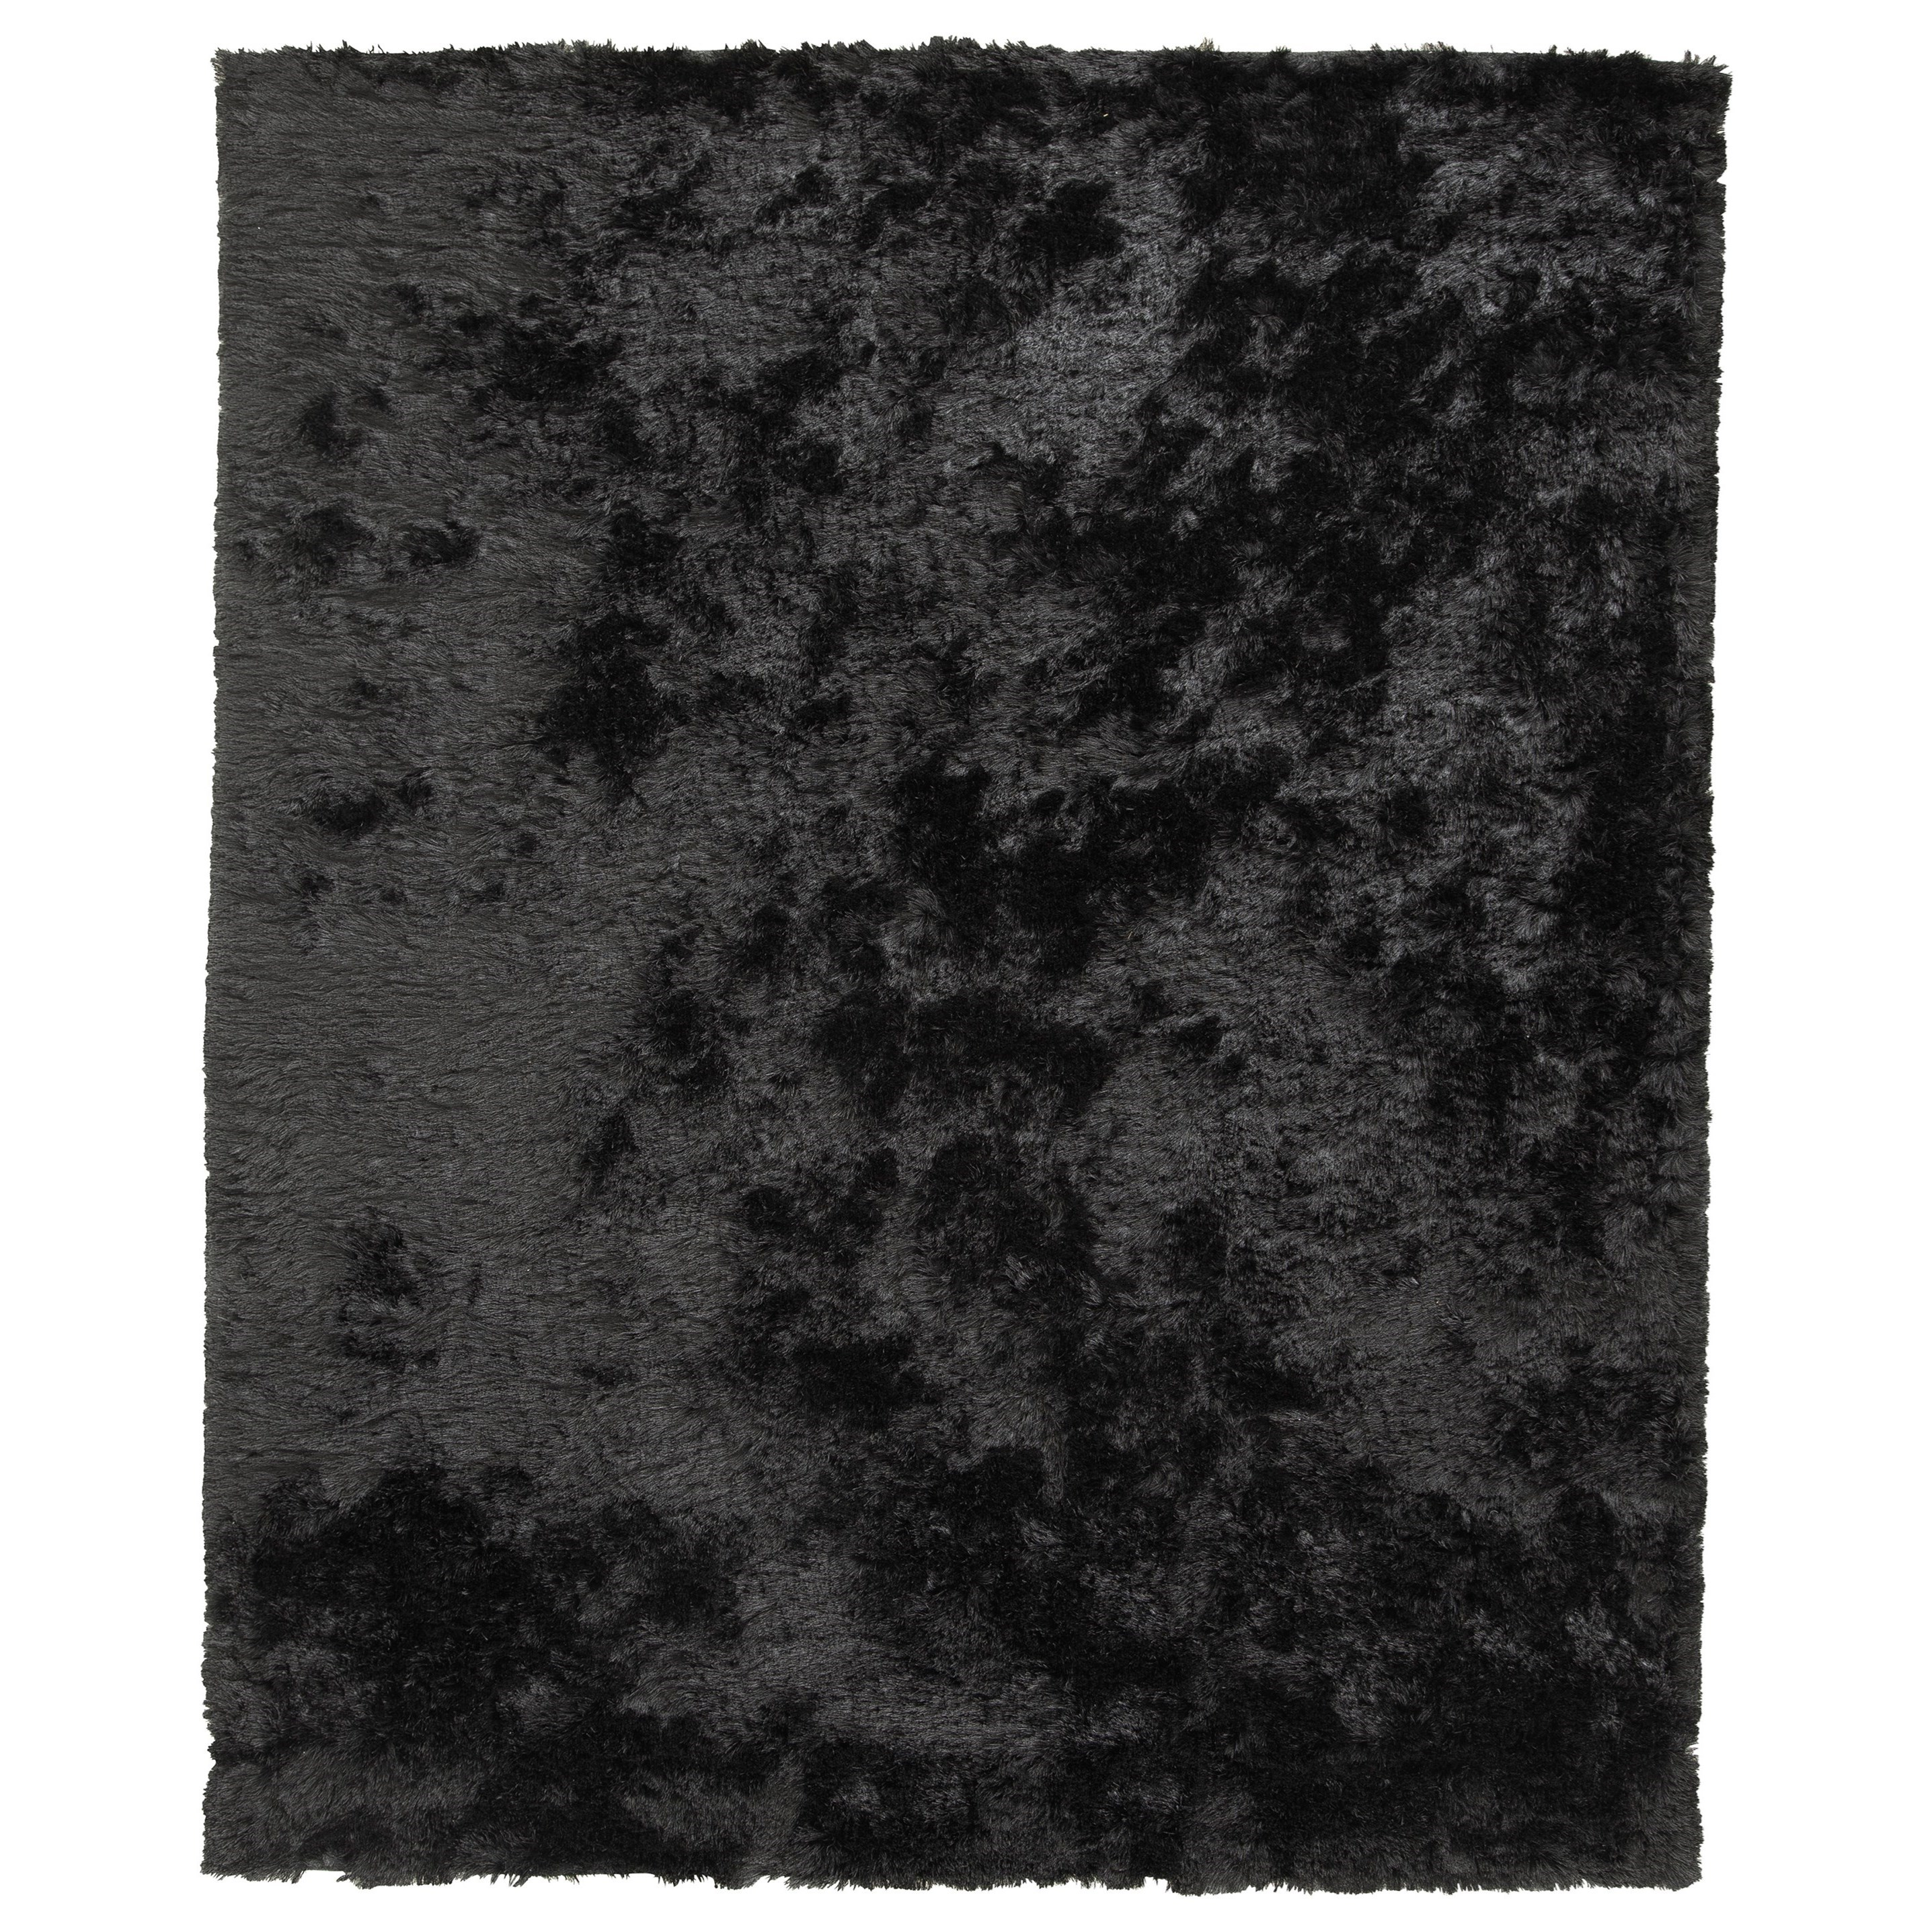 Contemporary Area Rugs Mattford Black Medium Rug by Signature Design by Ashley at Arwood's Furniture